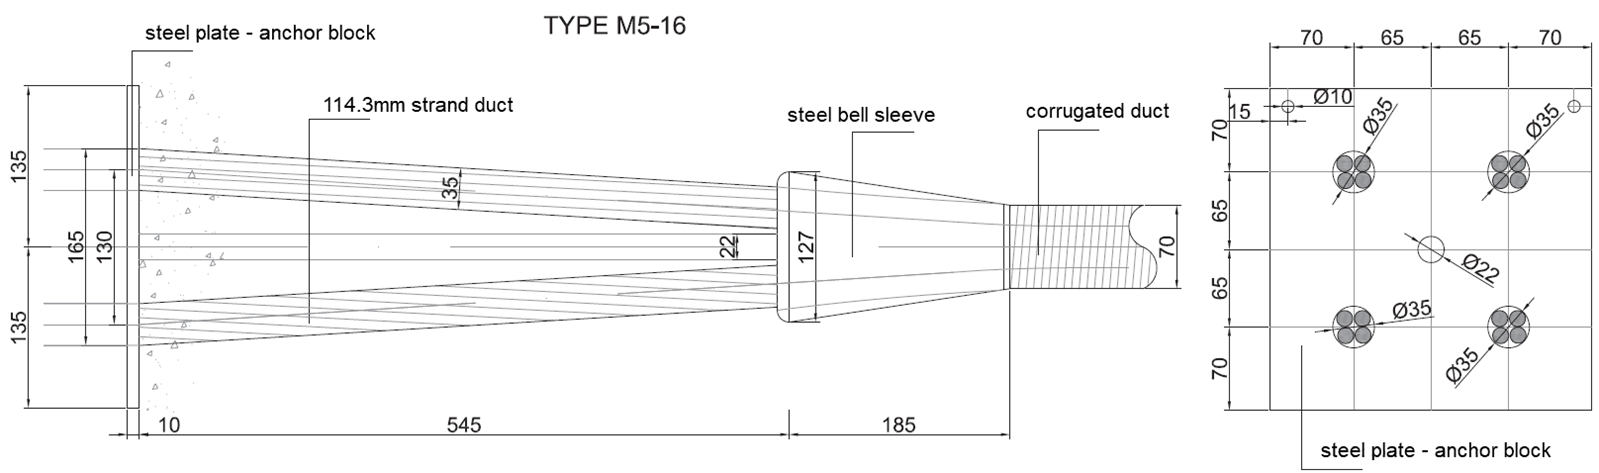 Image 3 Details of the end part of a 16 ½ inch strands post-tensioning cable according to the Morandi System, re-drawn (Units mm)